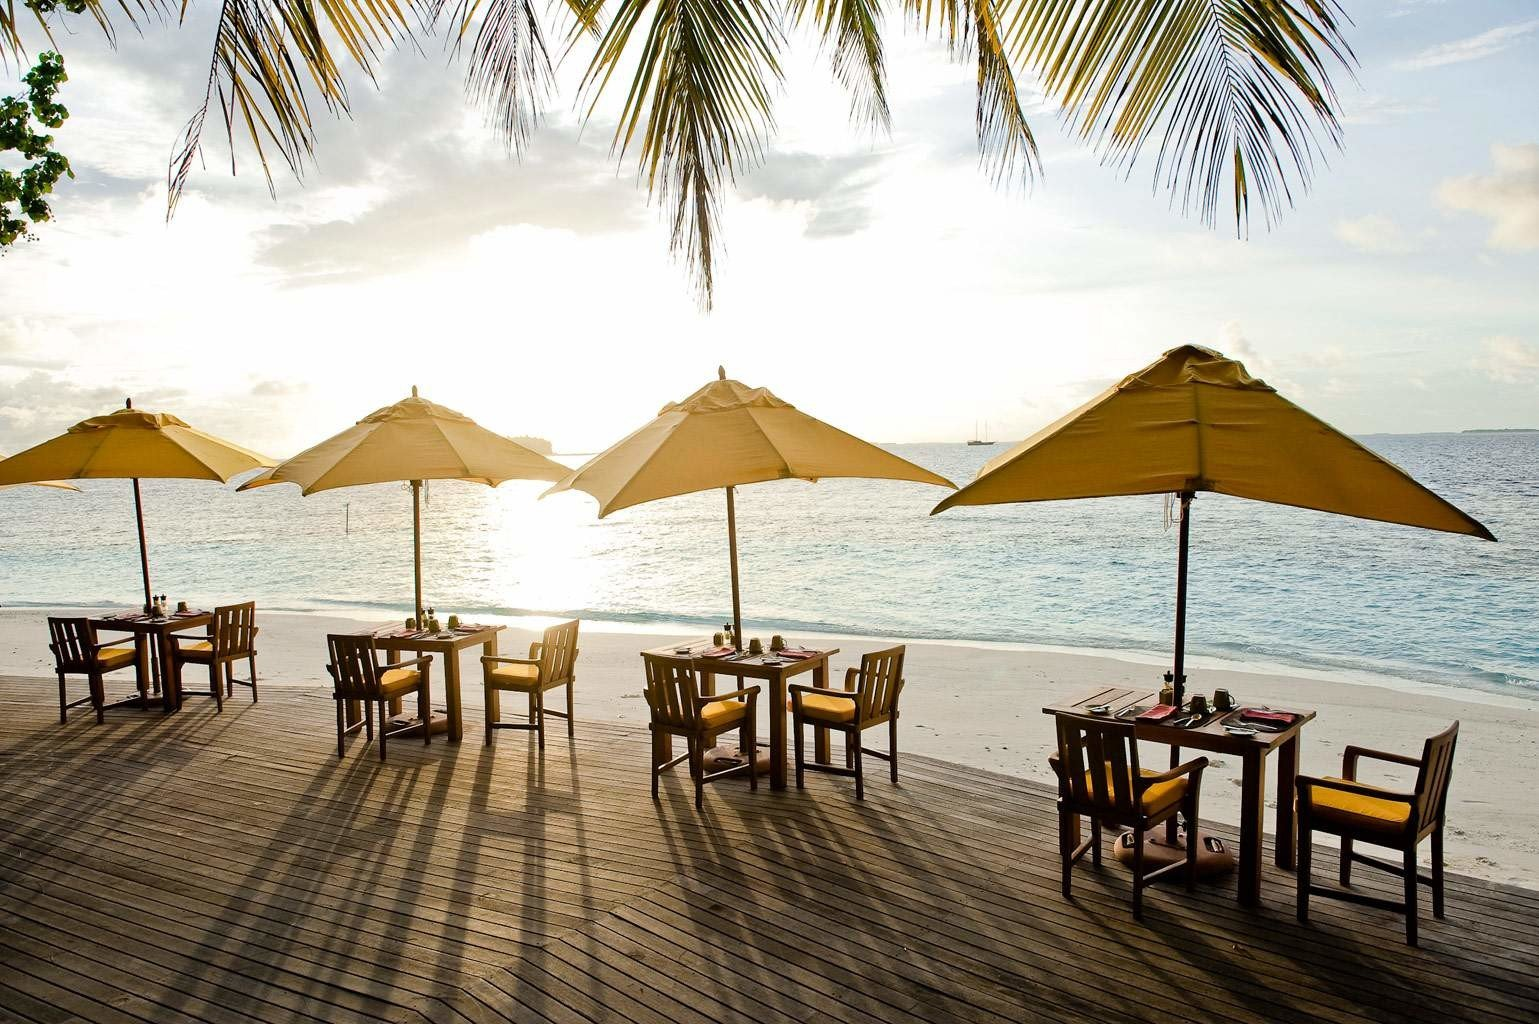 Bar Beach Dining Drink Eat Ocean umbrella water chair leisure Resort lined set palm shore